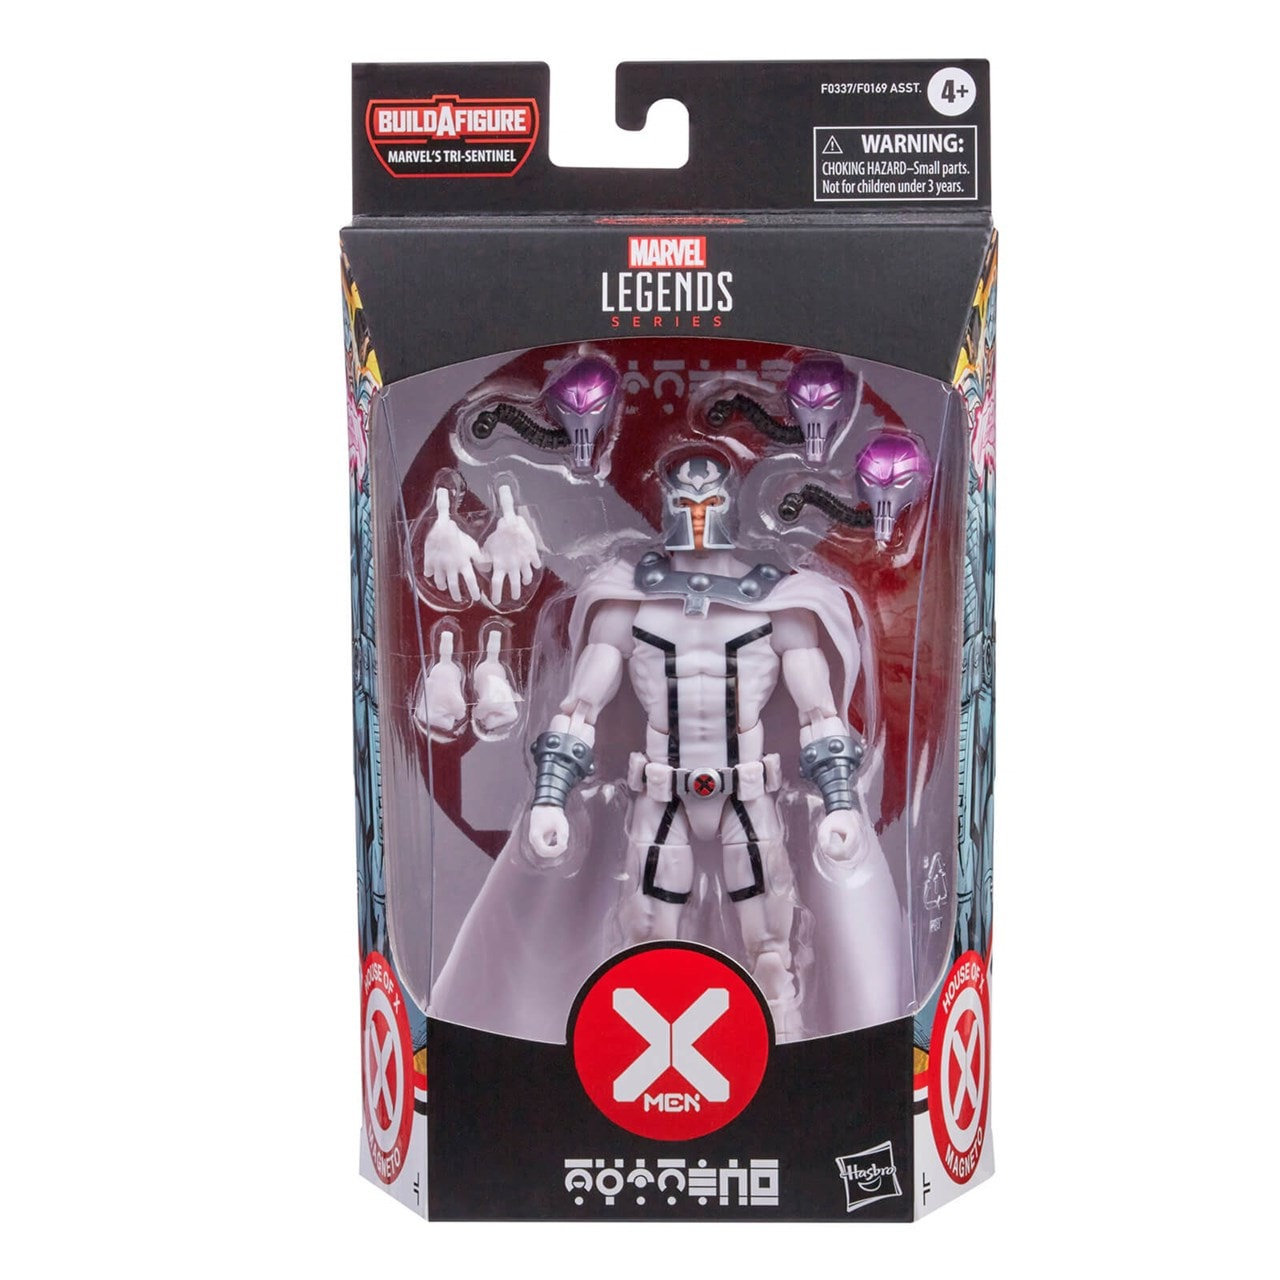 Marvel Legends Series X-Men Magneto Action Figure - 4